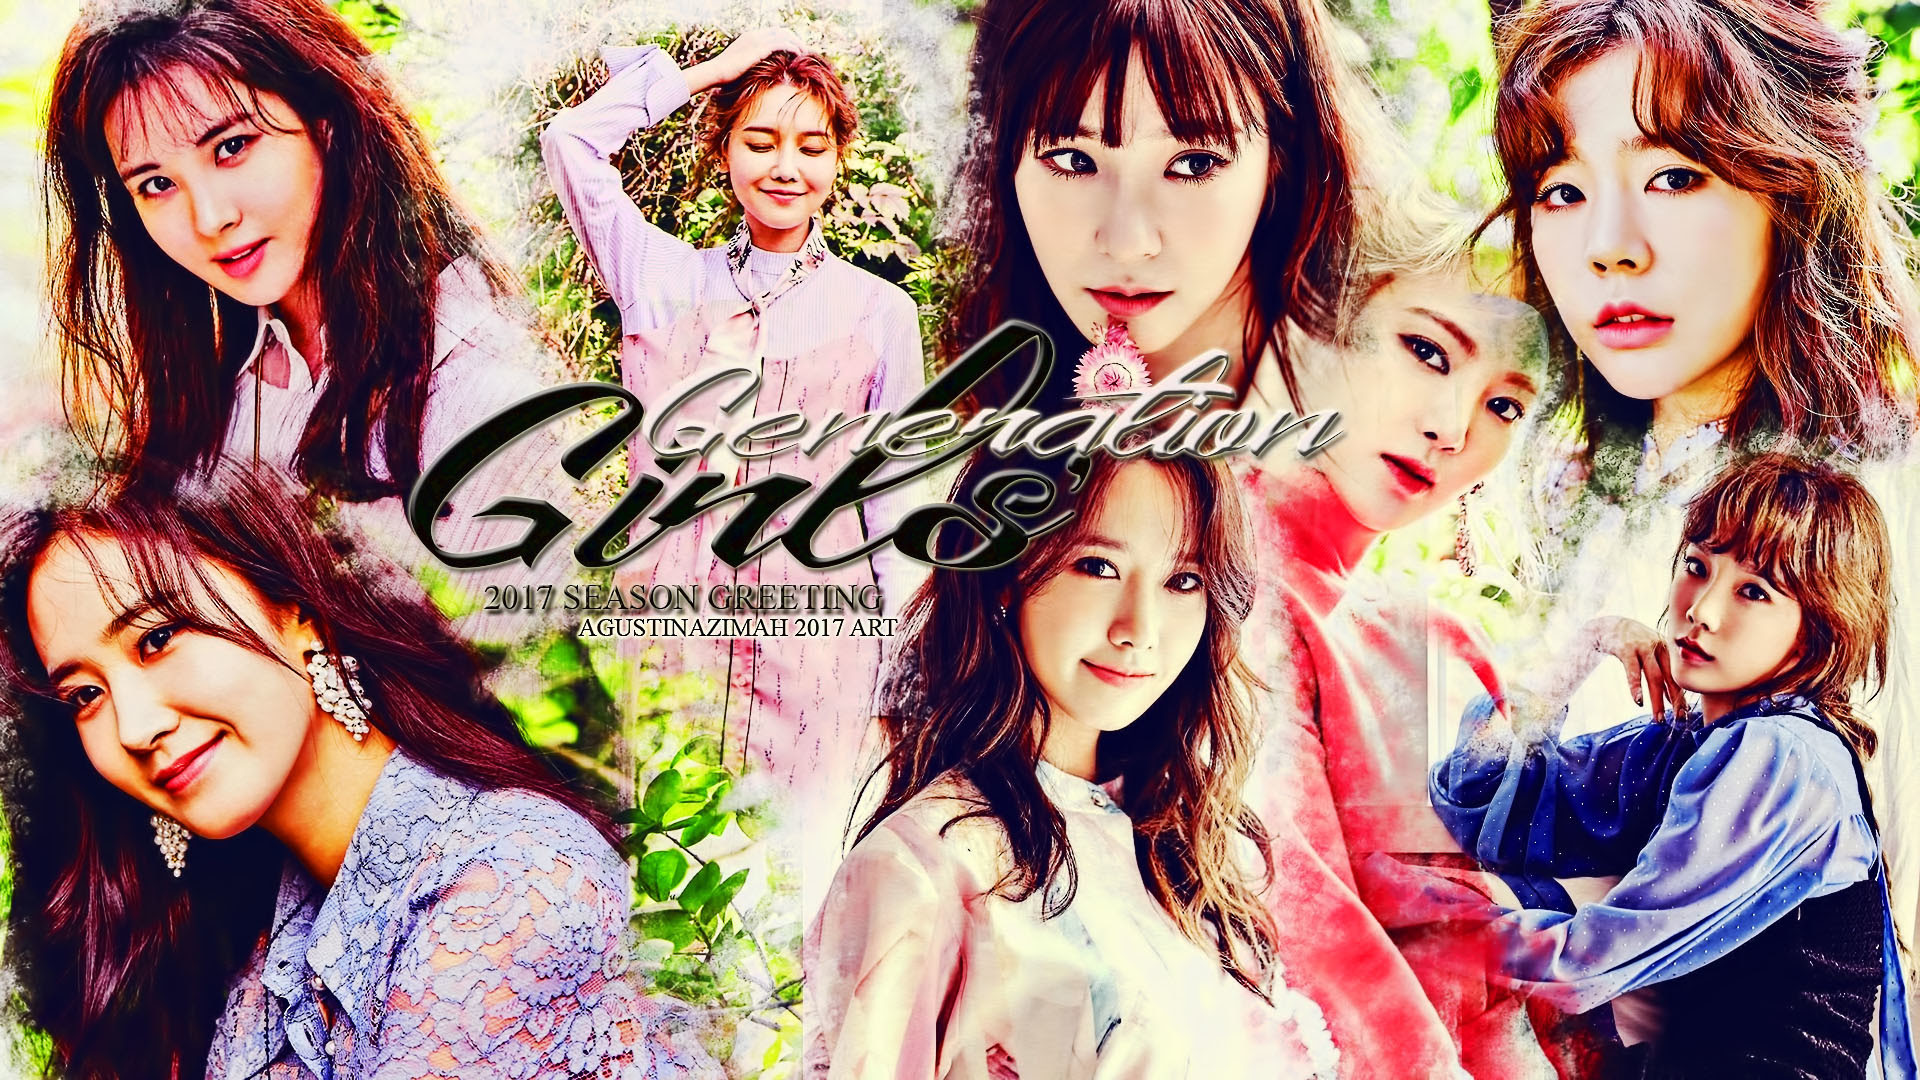 Wallpaper Snsd 2018 47 Images